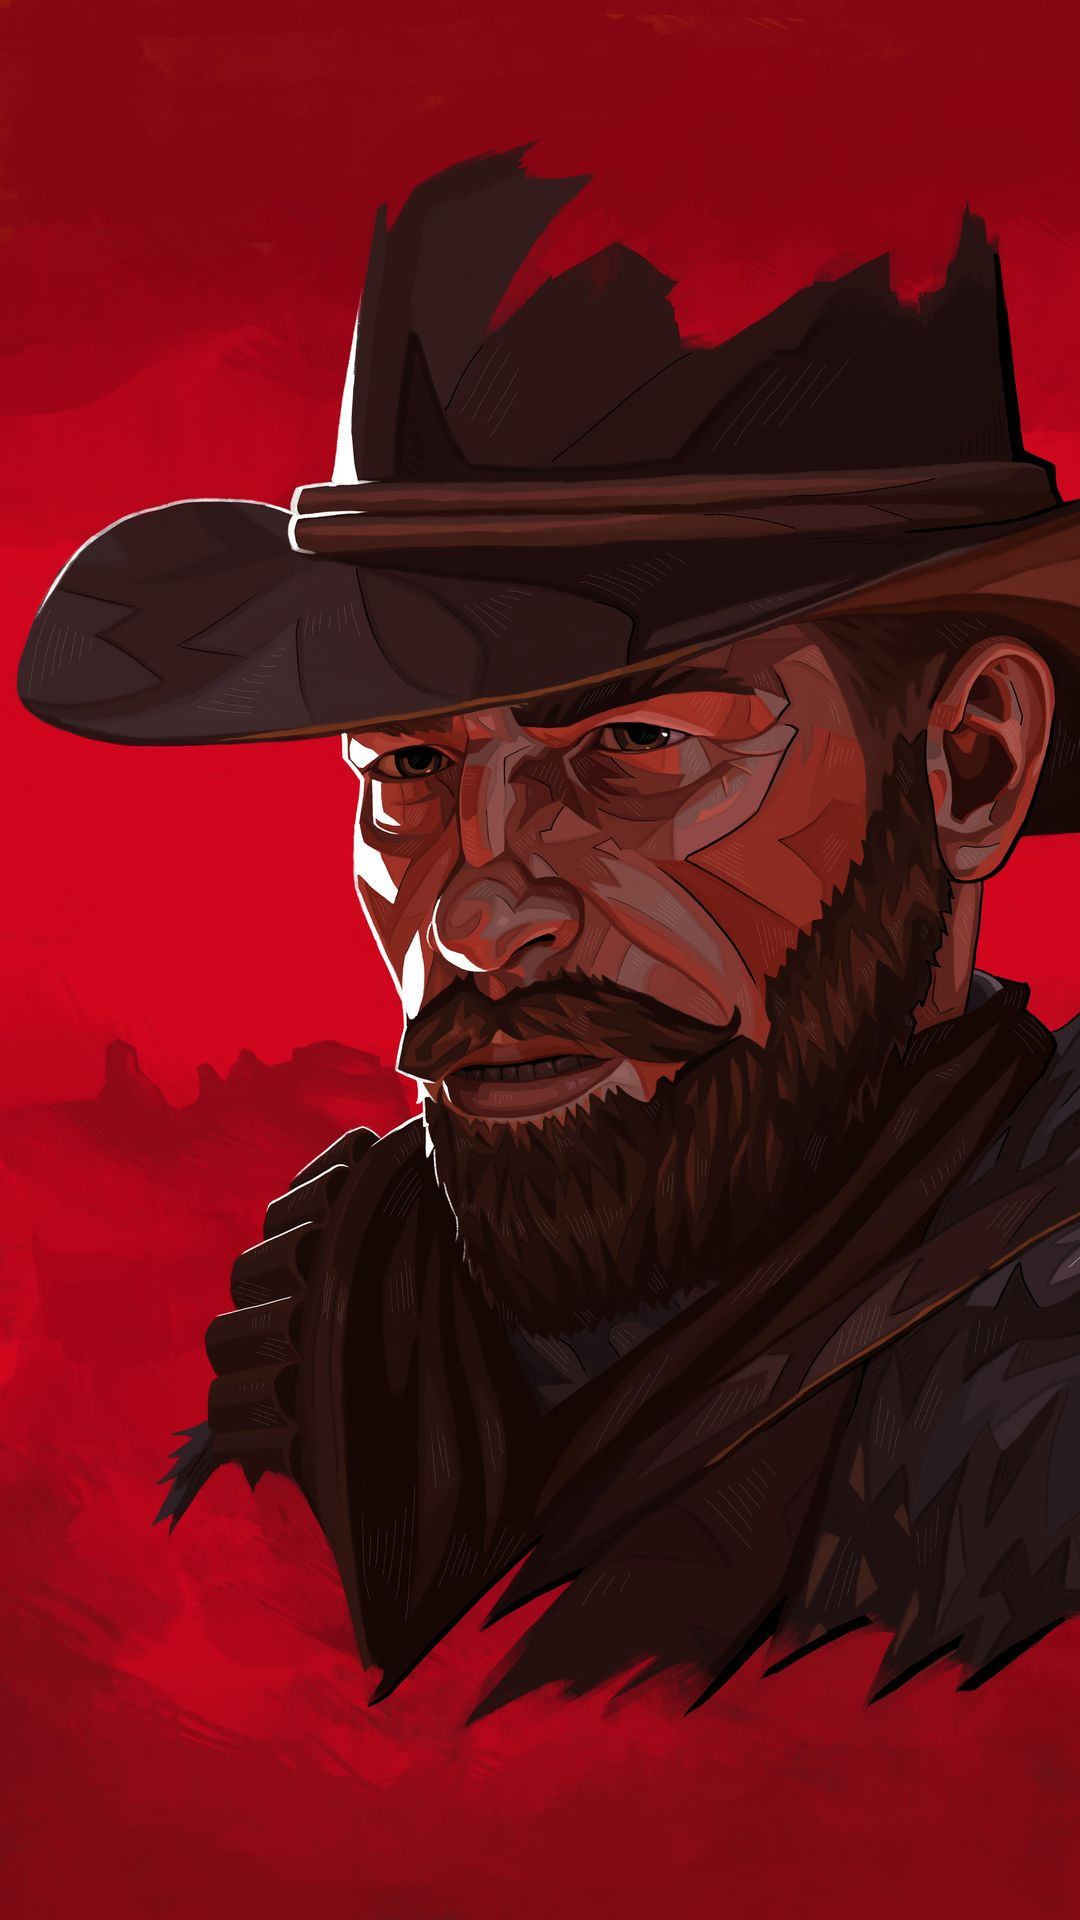 Arthur Morgan Red Dead Redemption 2 4k 2019 Mobile Wallpaper Iphone Android Samsung Pi In 2020 Red Dead Redemption Art Red Dead Redemption Digital Art Illustration